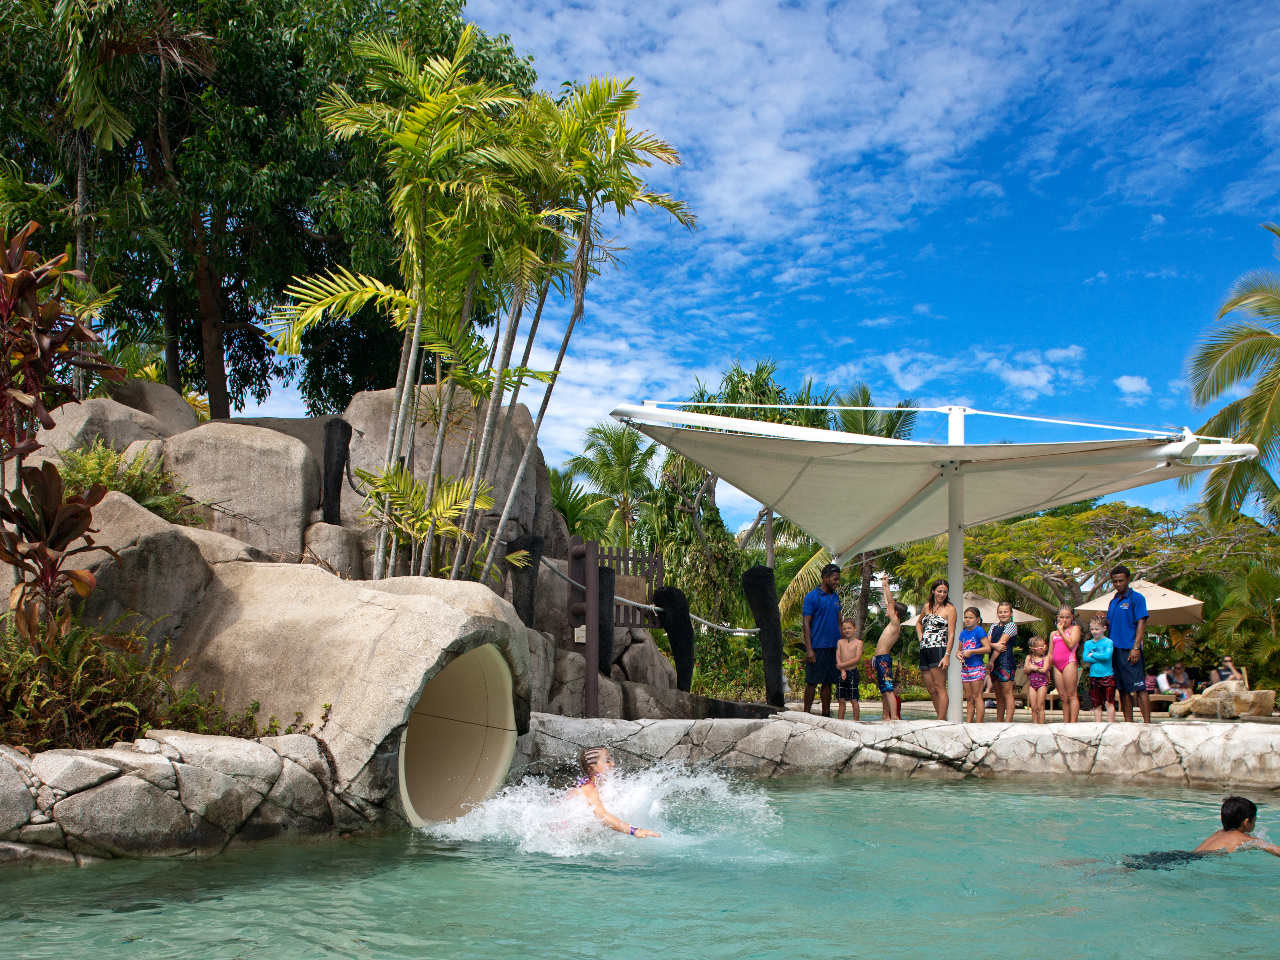 Radisson Fiji Waterslide | Point Hacks